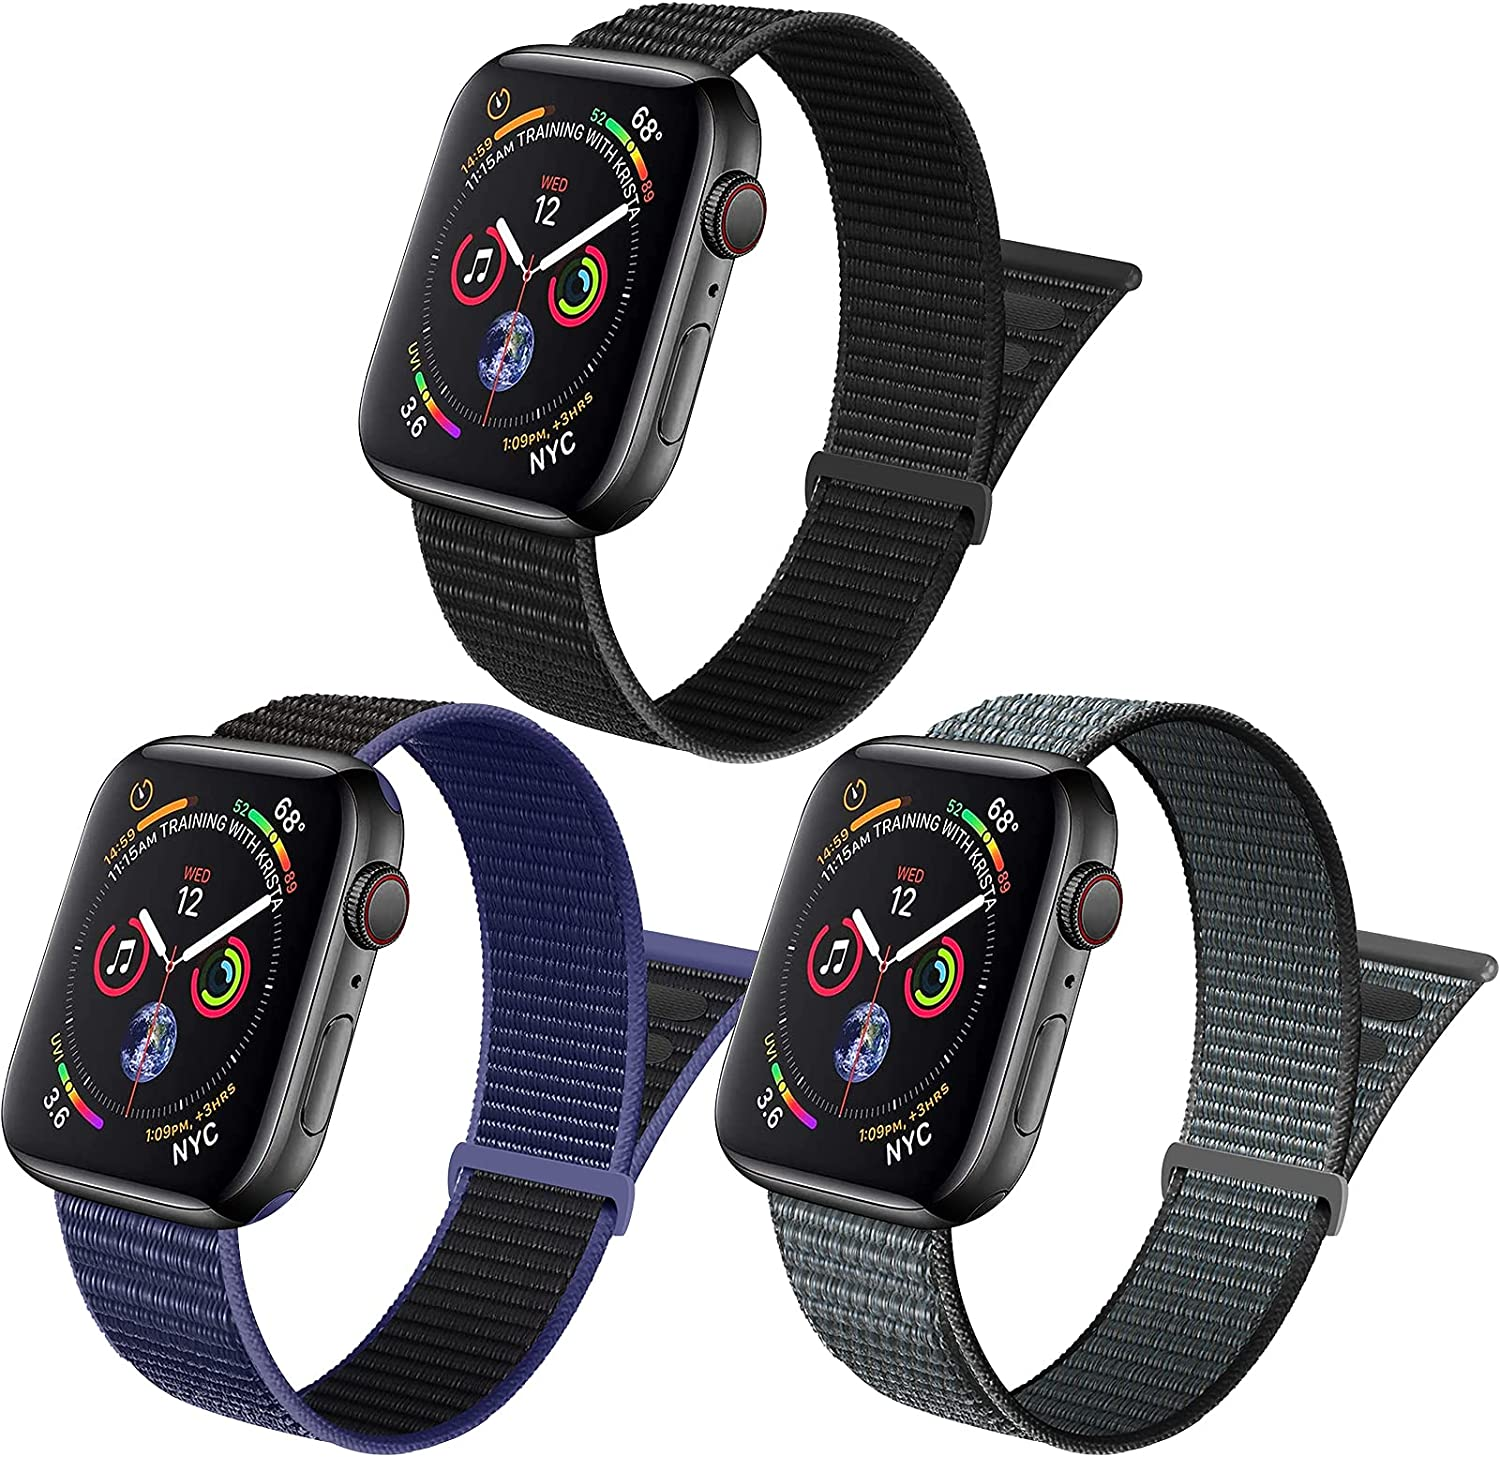 ZUQUEE 3Pack Nylon Loop Compatible with Apple Watch,Stretchy Soft Adjustable Elastic Women Men Sports Straps for Iwatch Series 7/6/5/4/3/2/1/SE,Dark Black/Midnight Blue Black/Storm Gray,42/44/45mm